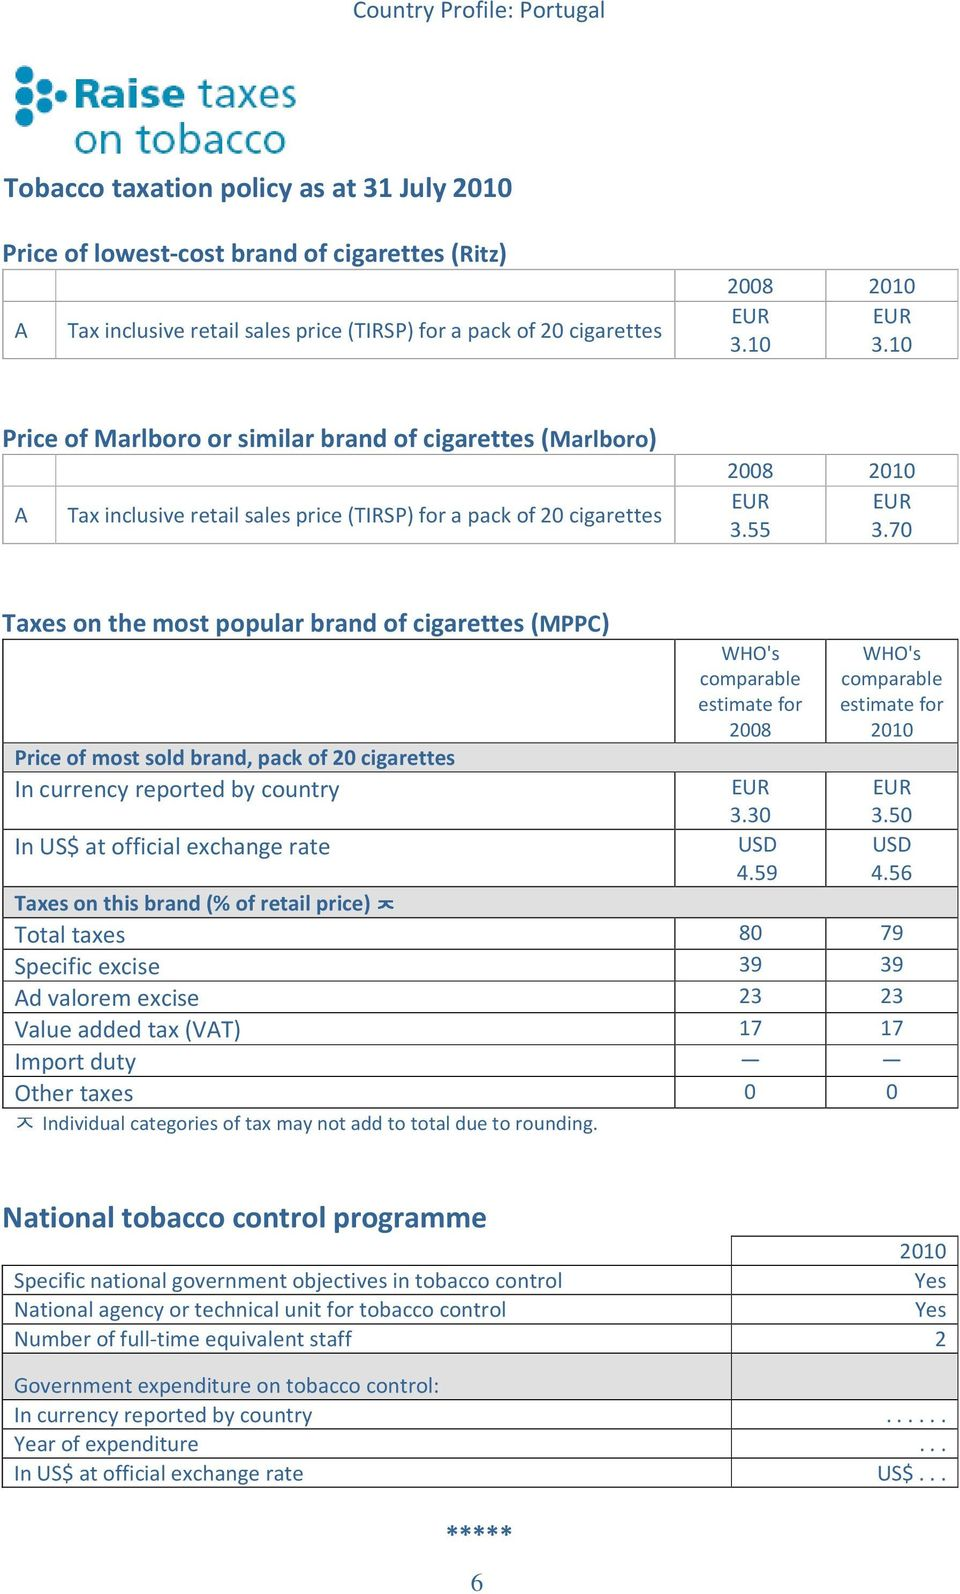 70 Taxes on the most popular brand of cigarettes (MPPC) ᄌ Price of most sold brand, pack of 20 cigarettes In currency reported by country In US$ at official exchange rate Taxes on this brand (% of